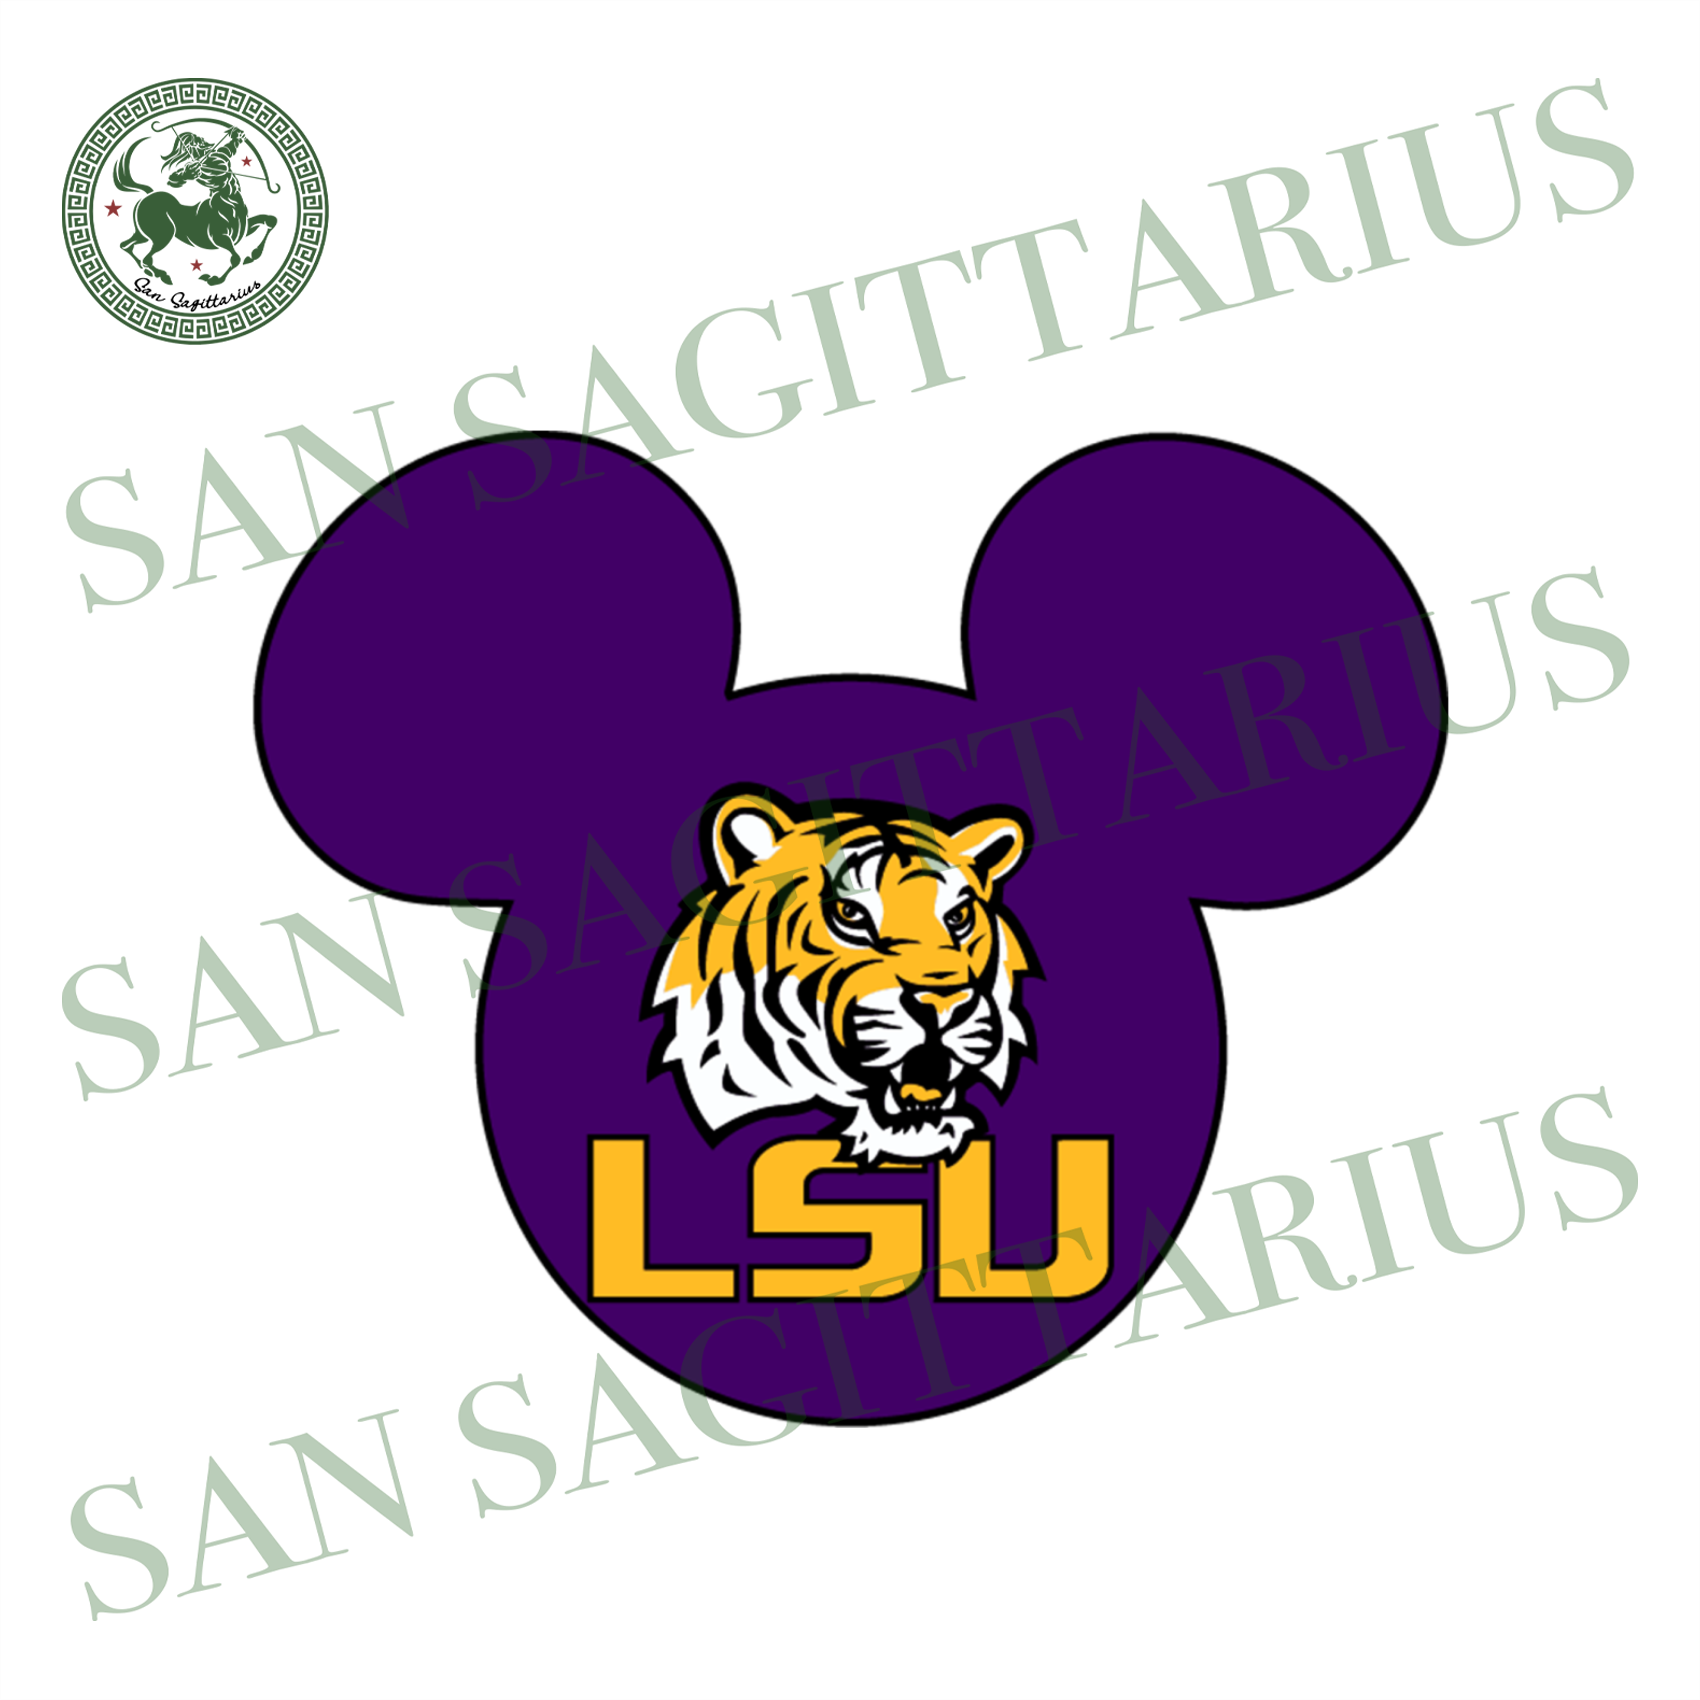 Lsu Tigers Mickey Svg, Sport Svg, Lsu Tigers Svg, Mickey Svg, Lsu Football Svg, Football Mom Shirt, Tigers Fan Gifts Ideas, Lsu Tigers Logo Design, Tigers Fan Shirt, Lsu Tigers Vector, Lsu Ti